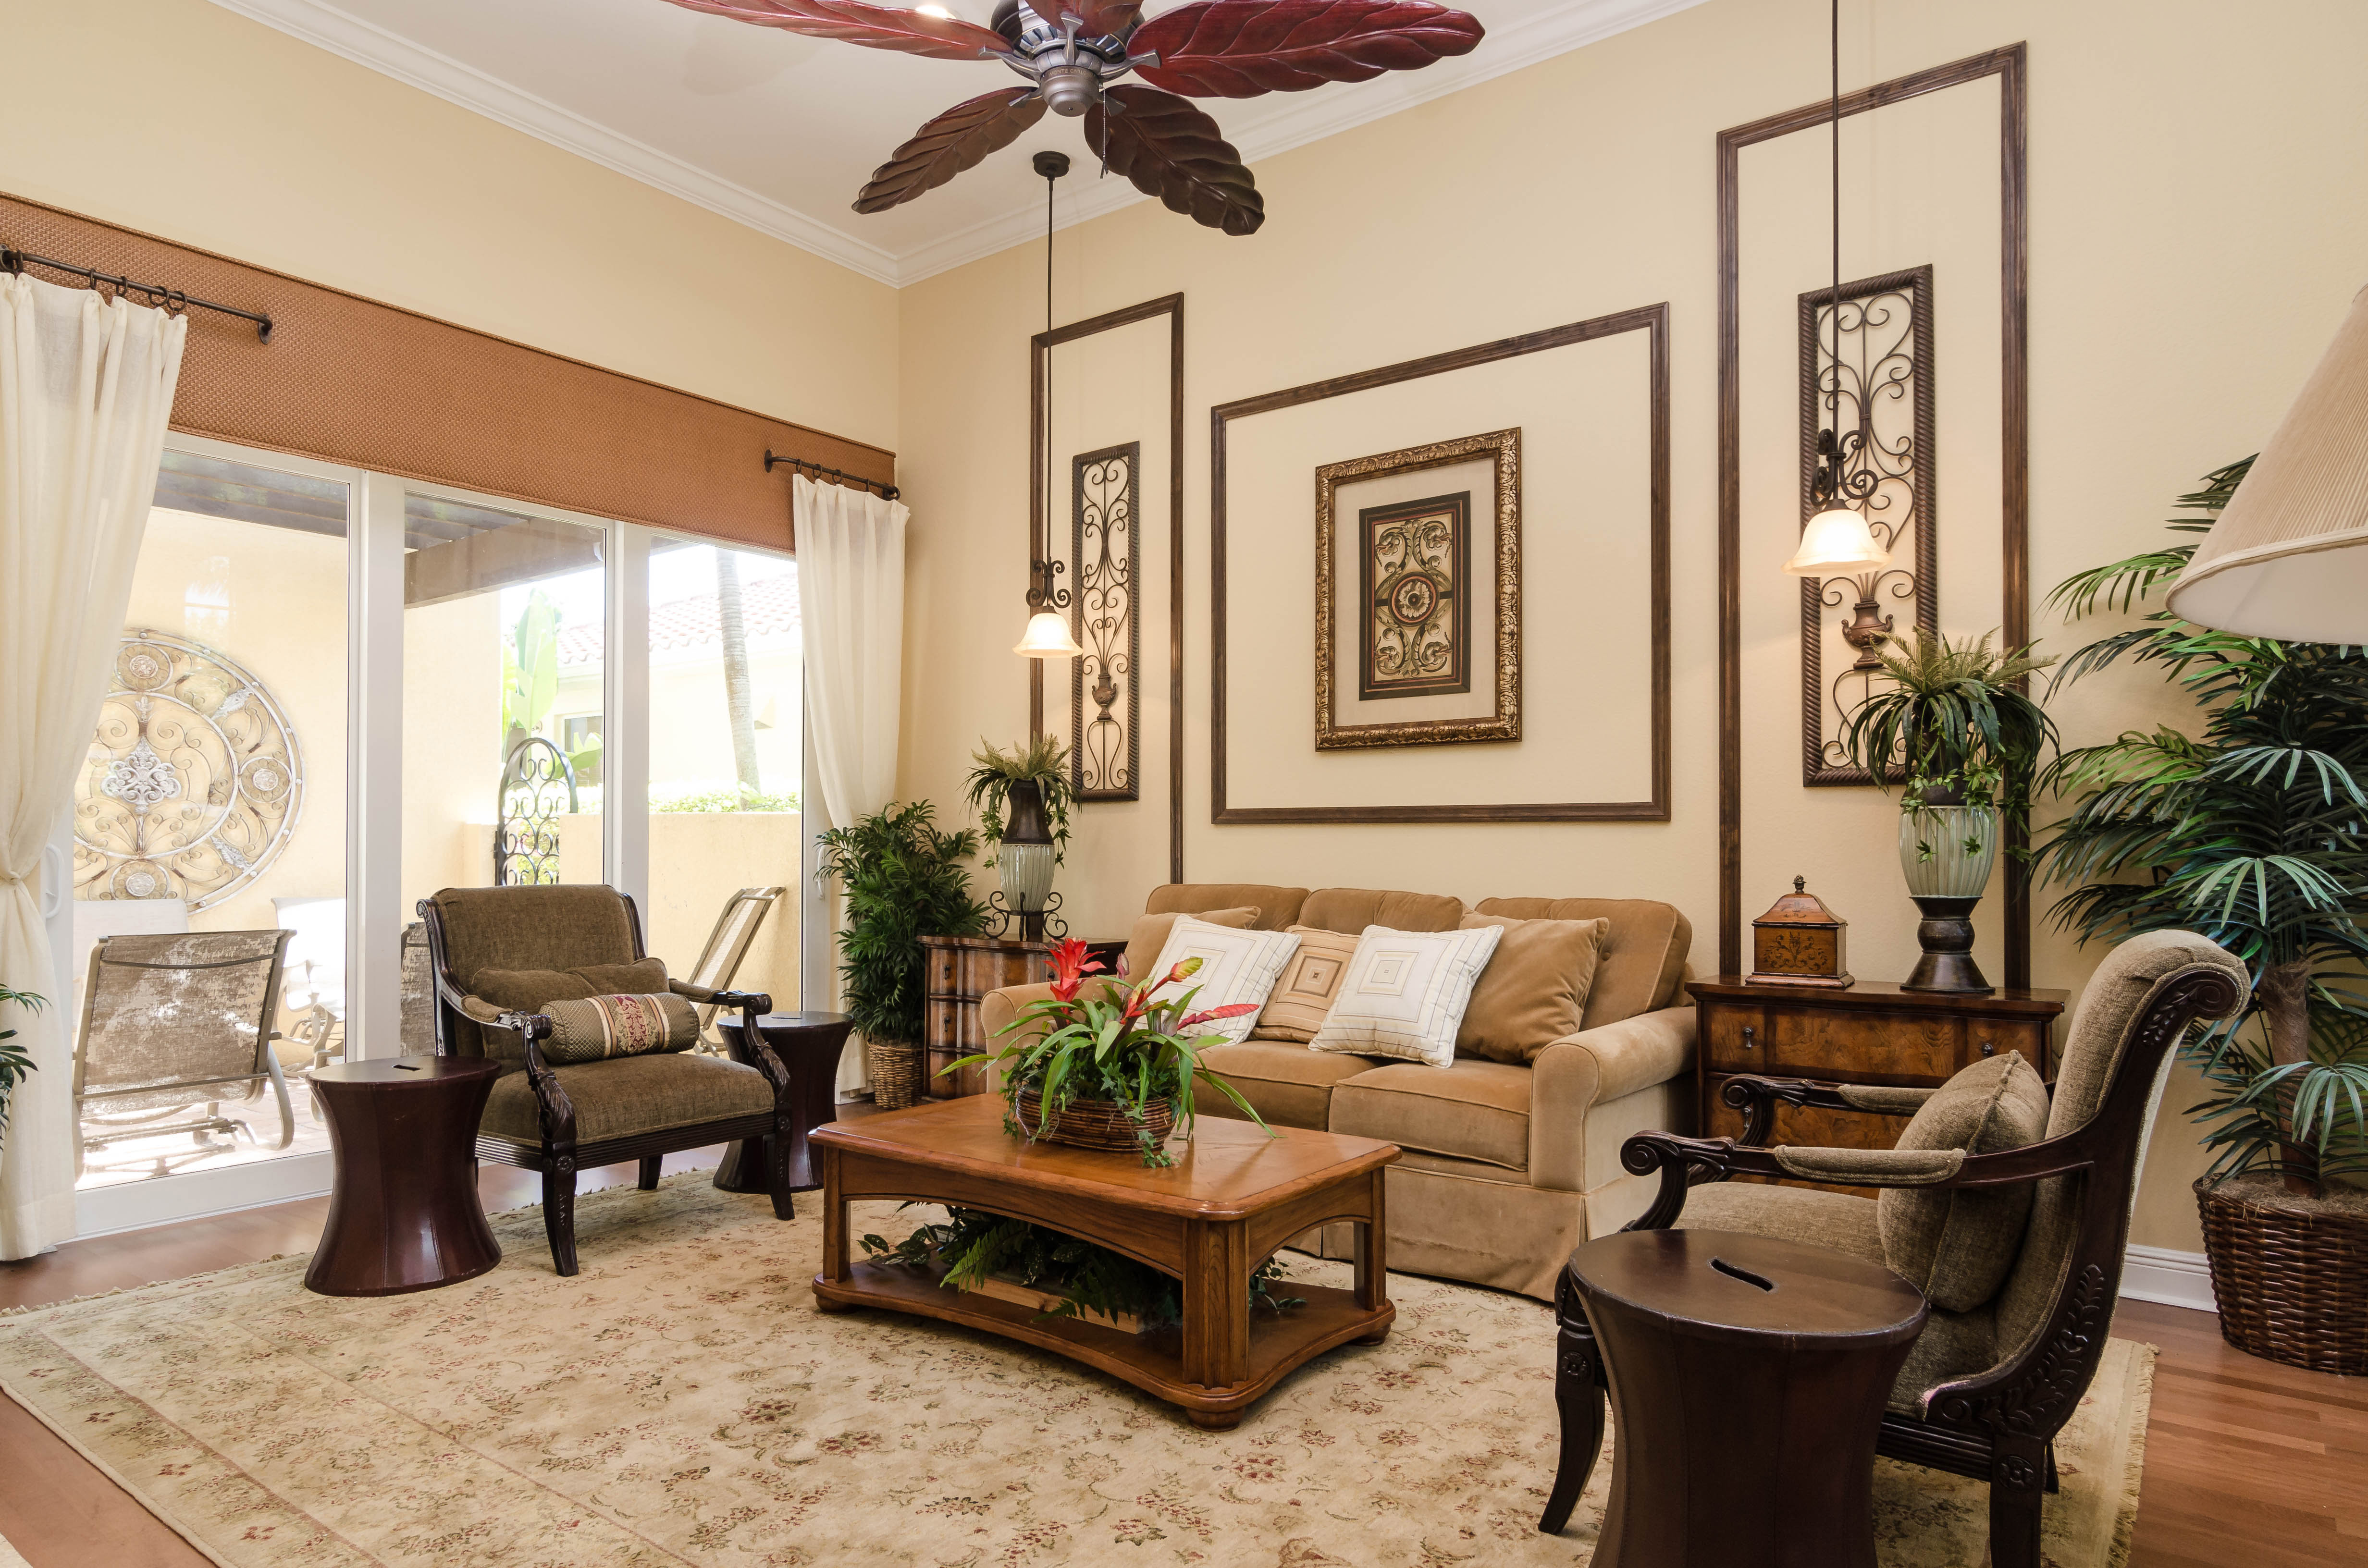 gorgeous naples lakefront home for sale in firano naples naples firano at naples gated community was built by toll brothers offering gorgeous single family homes many with lake views the amenities at firano include a